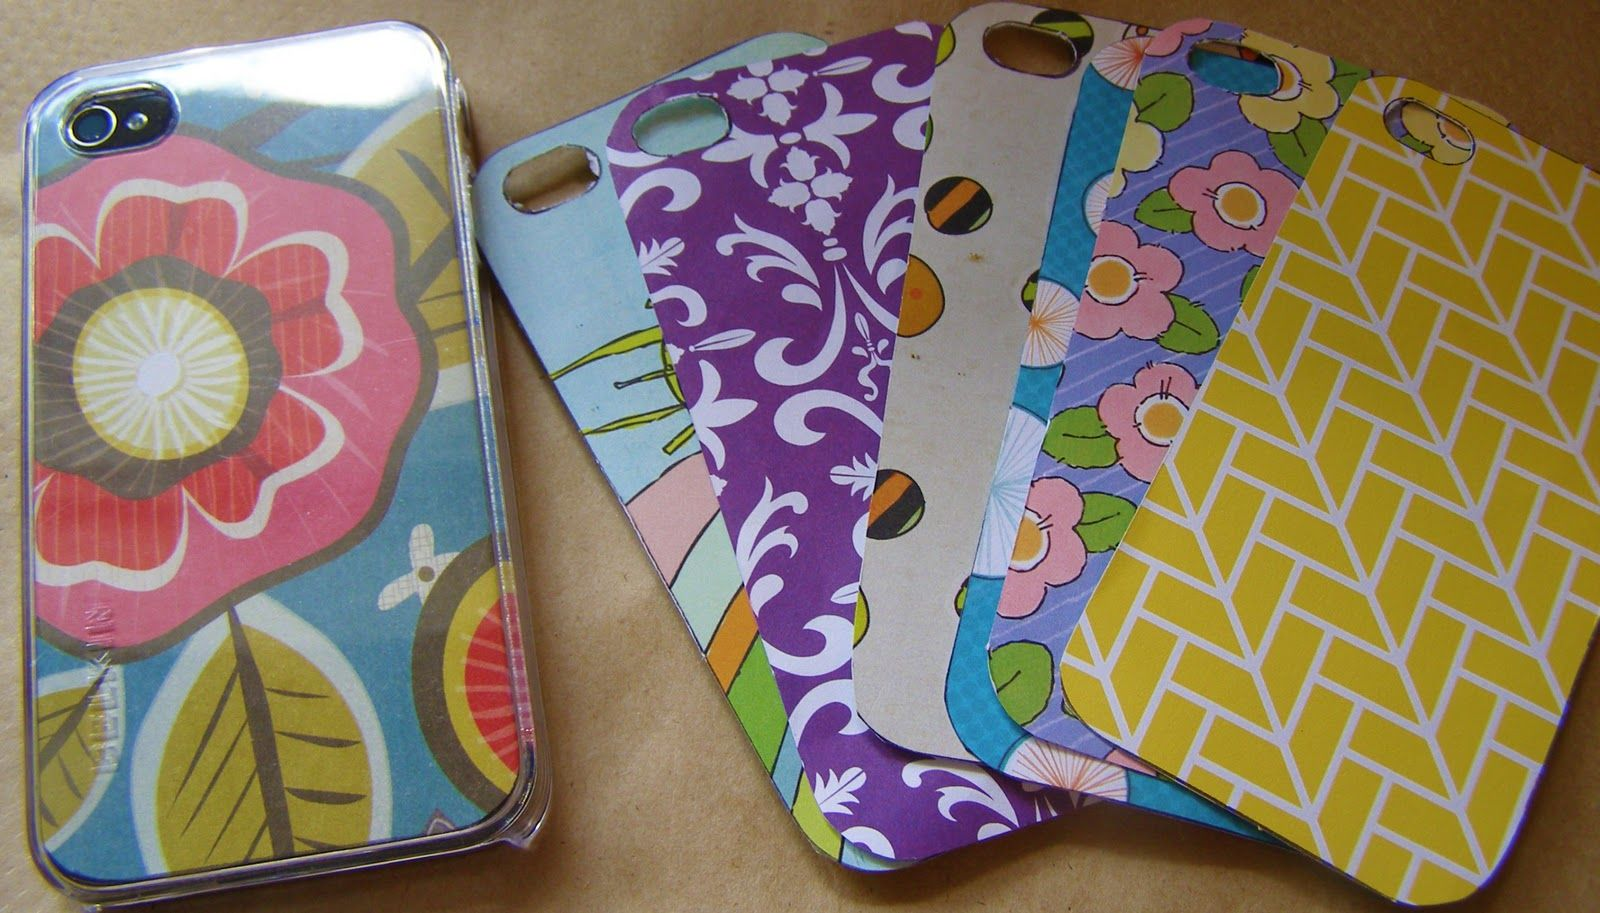 Scrapbook paper case - Diy Phone Case Design Buy A Clear Iphone Case And Create A New Back For It Like Scrapbook Paper Or Photocopied Photos Of My Family Or A Favorite Quote